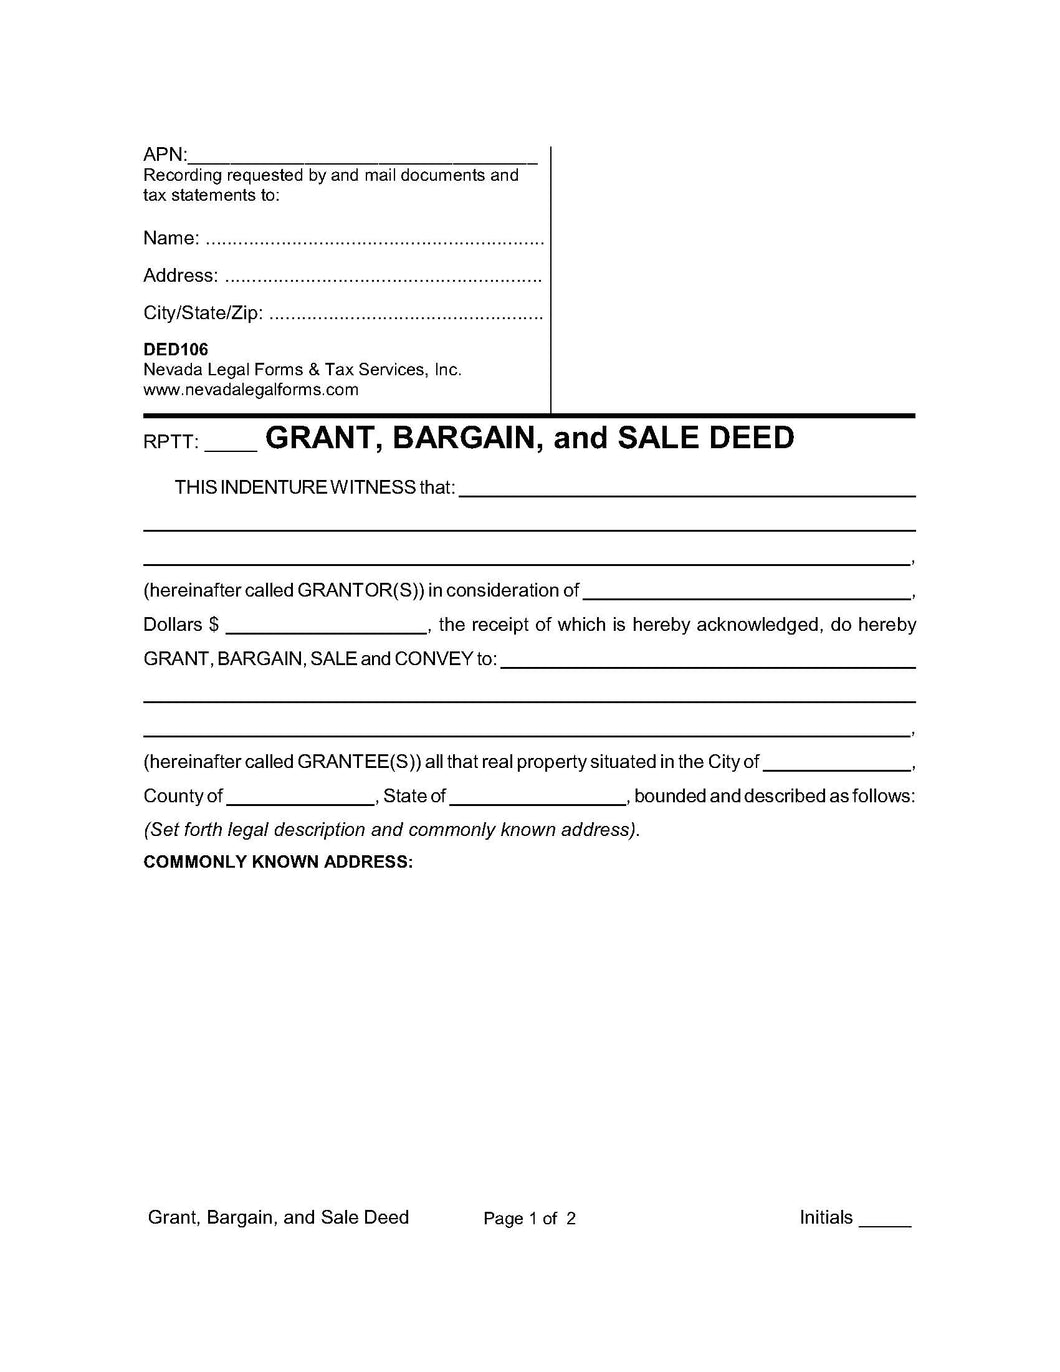 Grant, Bargain, and Sale Deed